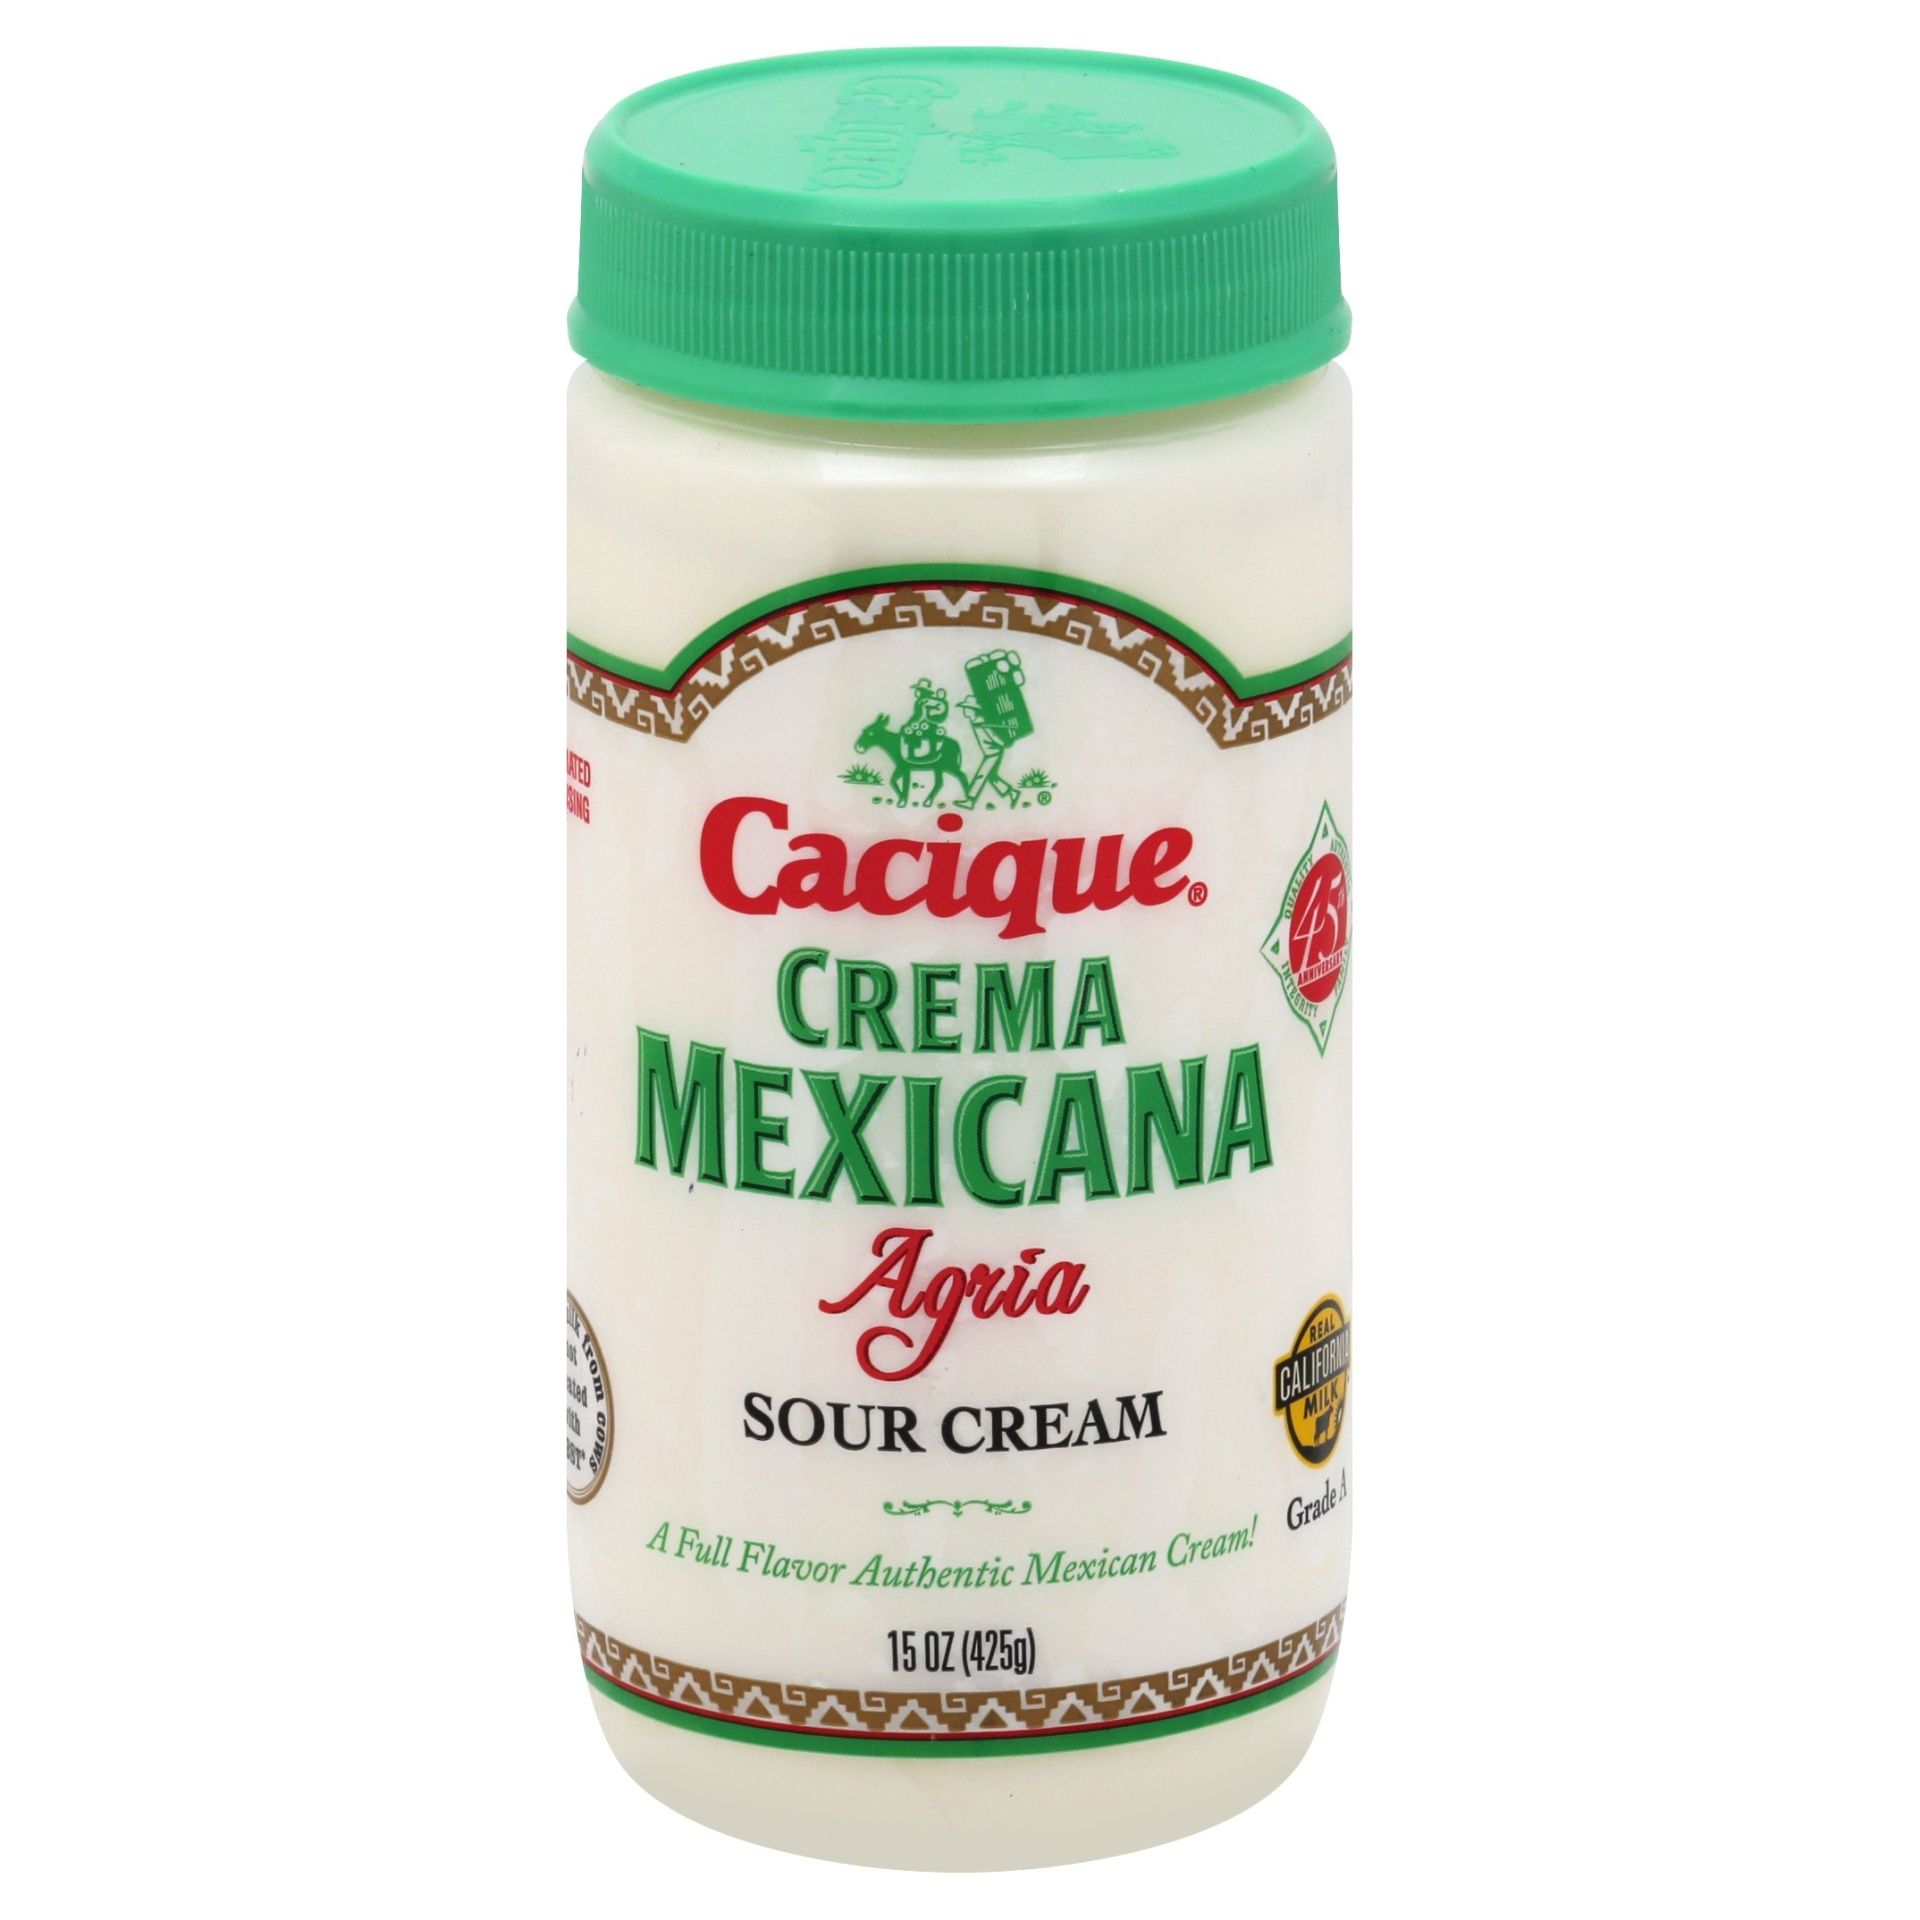 slide 1 of 1, Cacique Crema Mexicana Agria,